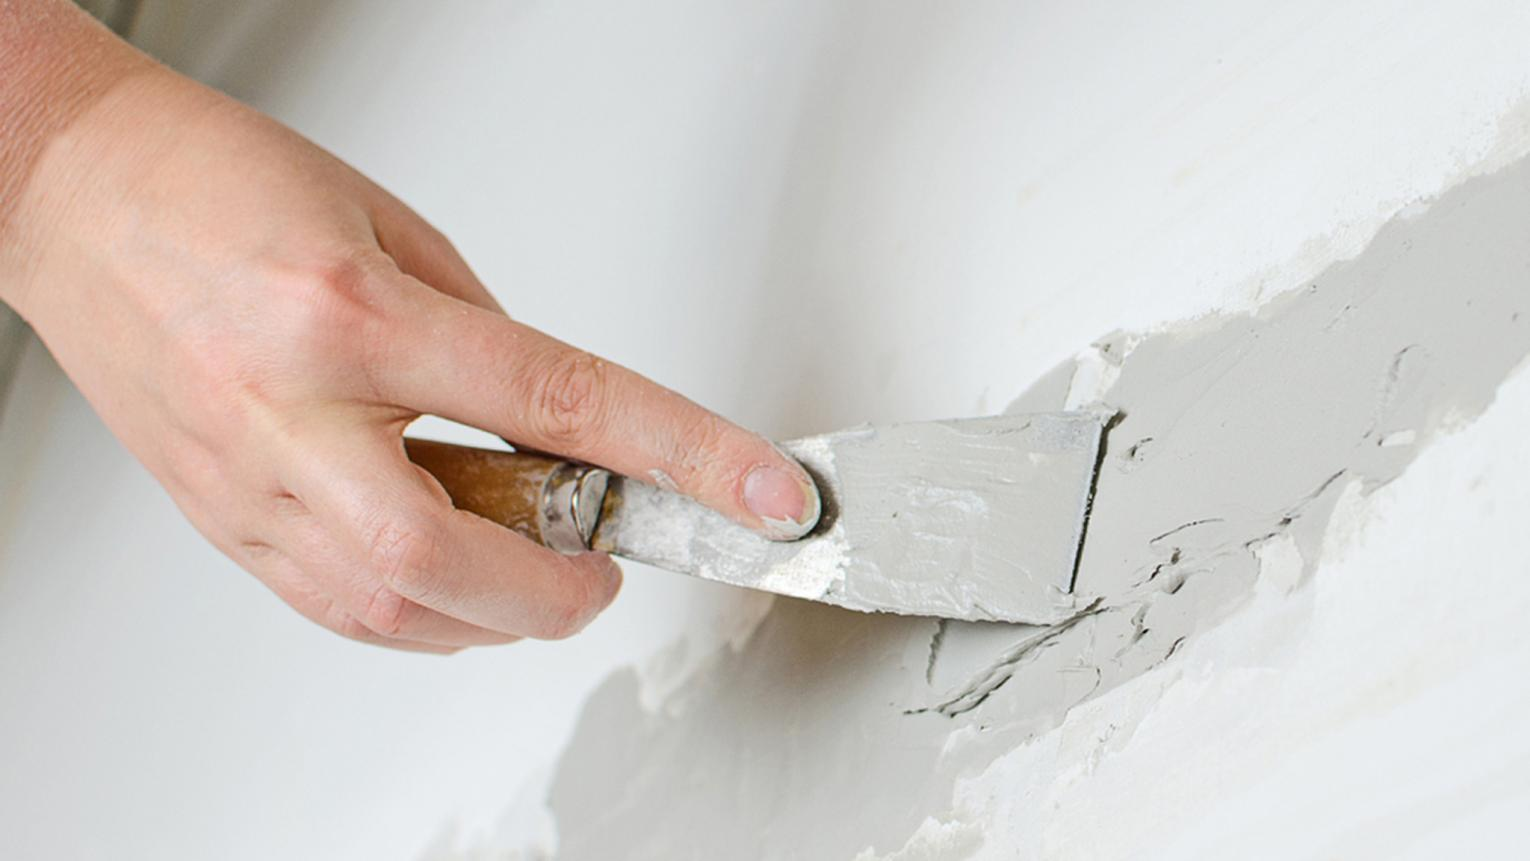 From fighting mold and filling holes to choosing paintbrushes, here are our expert tips on how to avoid the most common decorating problems.